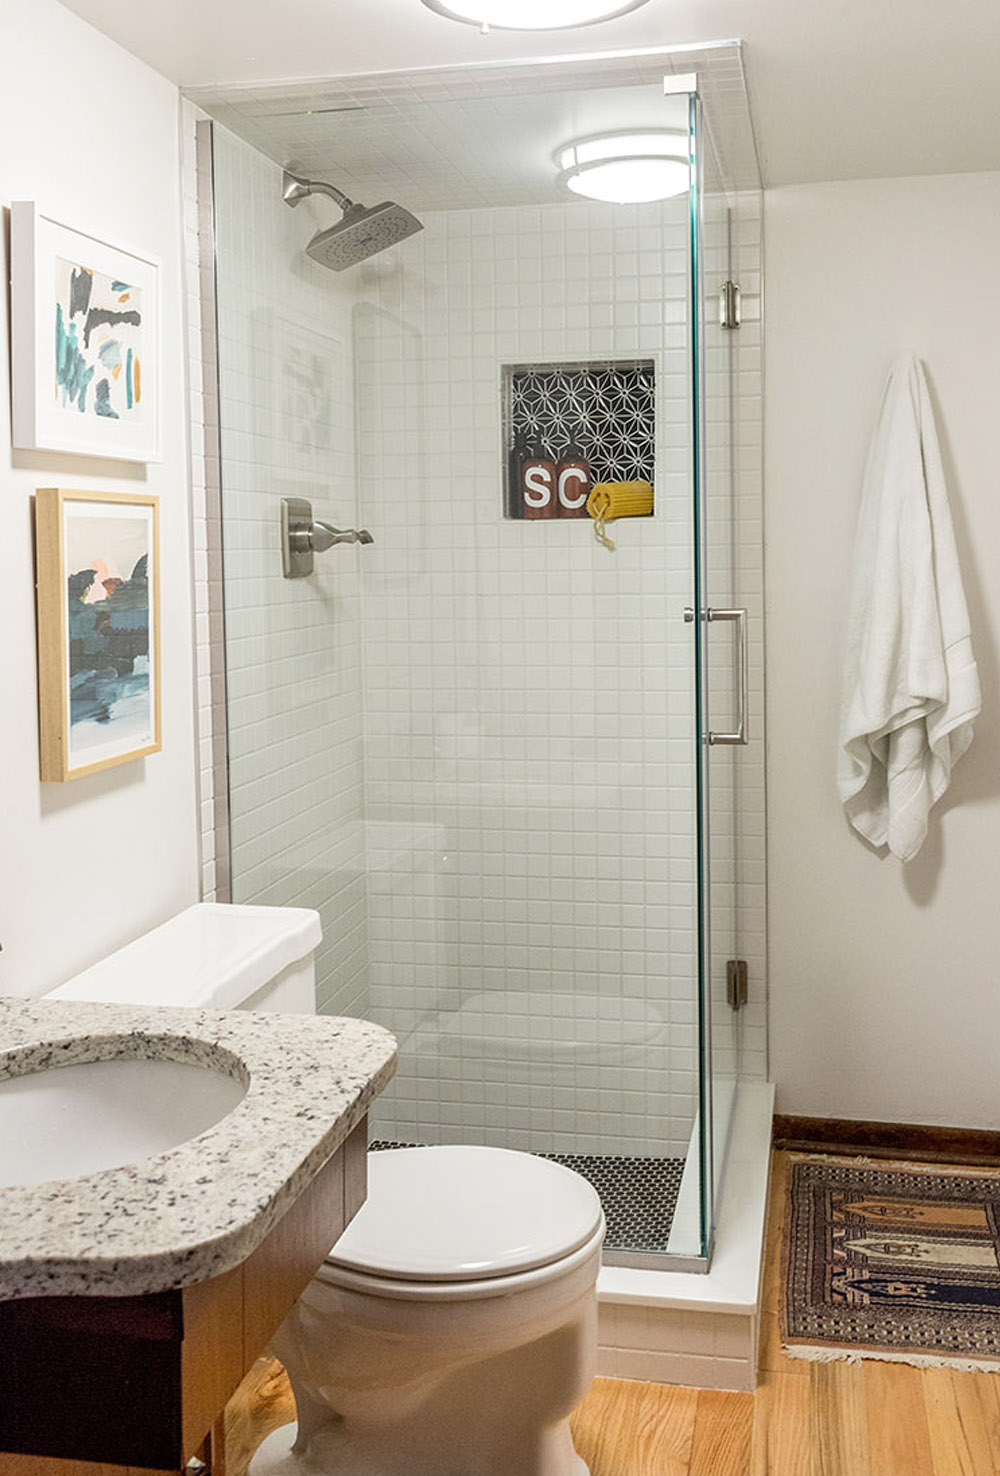 A bathroom with white walls, a glass shower, white toilet, wooden vanity, mirror, and gold bathroom light fixture.